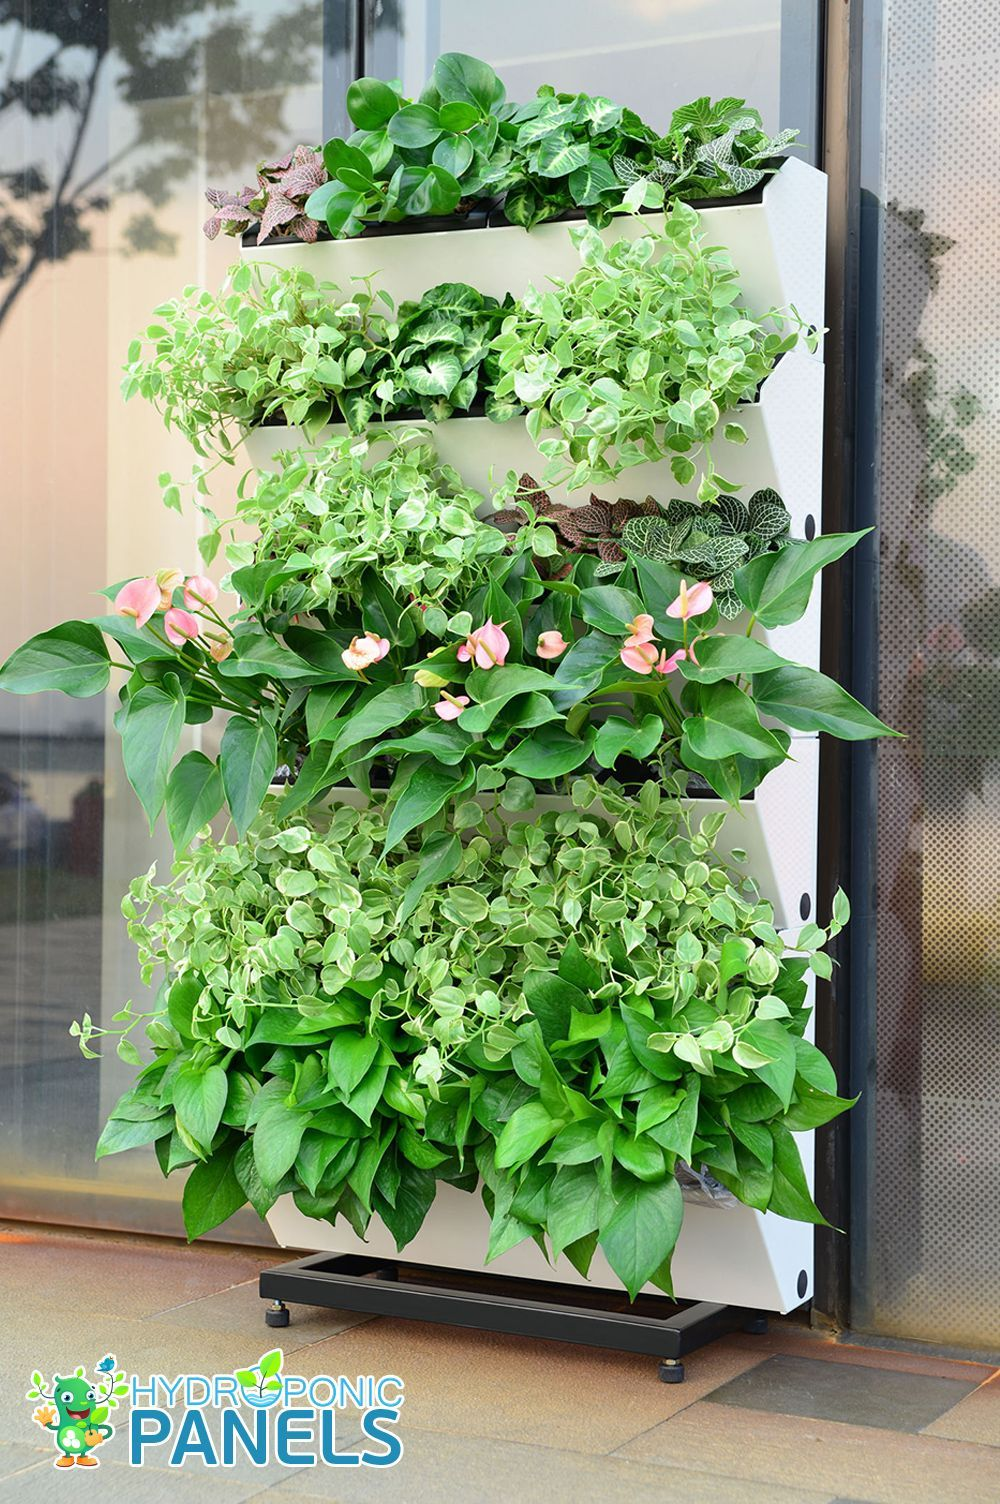 Hydroponic Panels hydroponicgardening Vertical herb